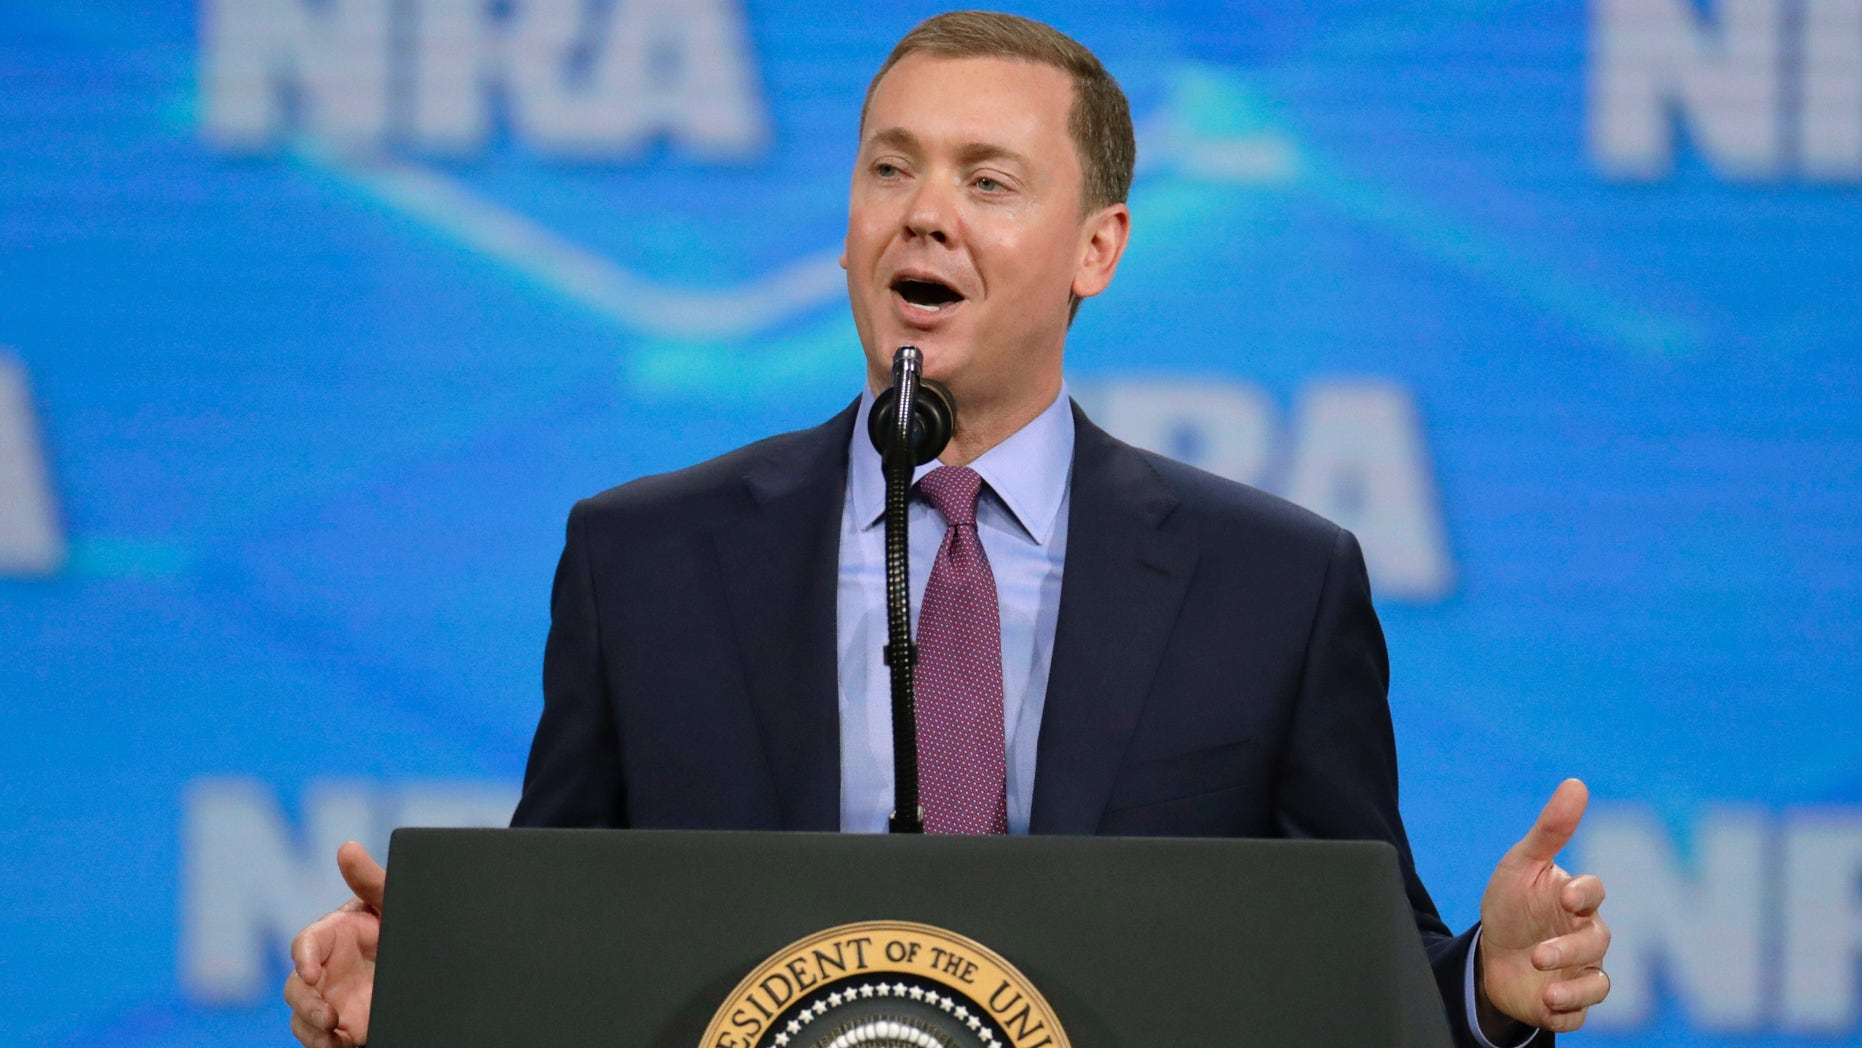 The National Rifle Association's top lobbyist, Chris Cox, resigned Wednesday, the latest development in a dizzying array of in-fighting within the gun lobbying group in recent months that has ensnared even its most ardent loyalists.(AP Photo/Michael Conroy, File)